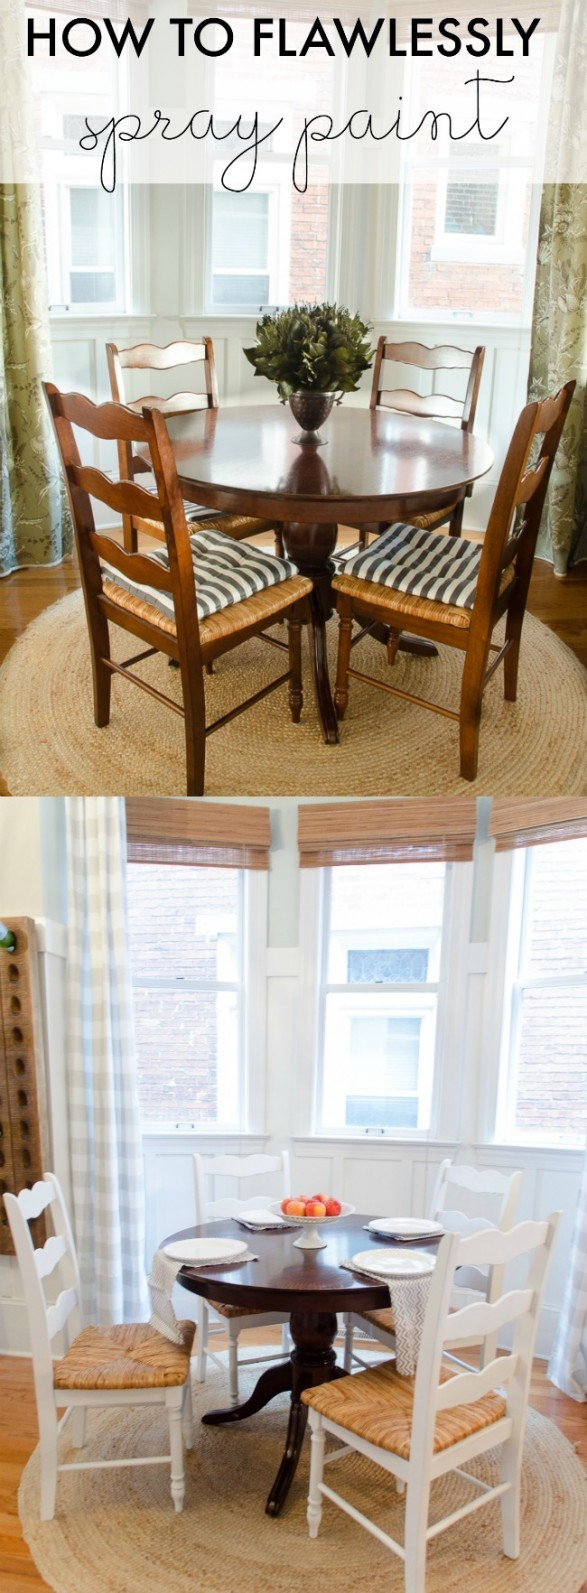 How-to-flawlessly-spray-paint-furniture-587x1593